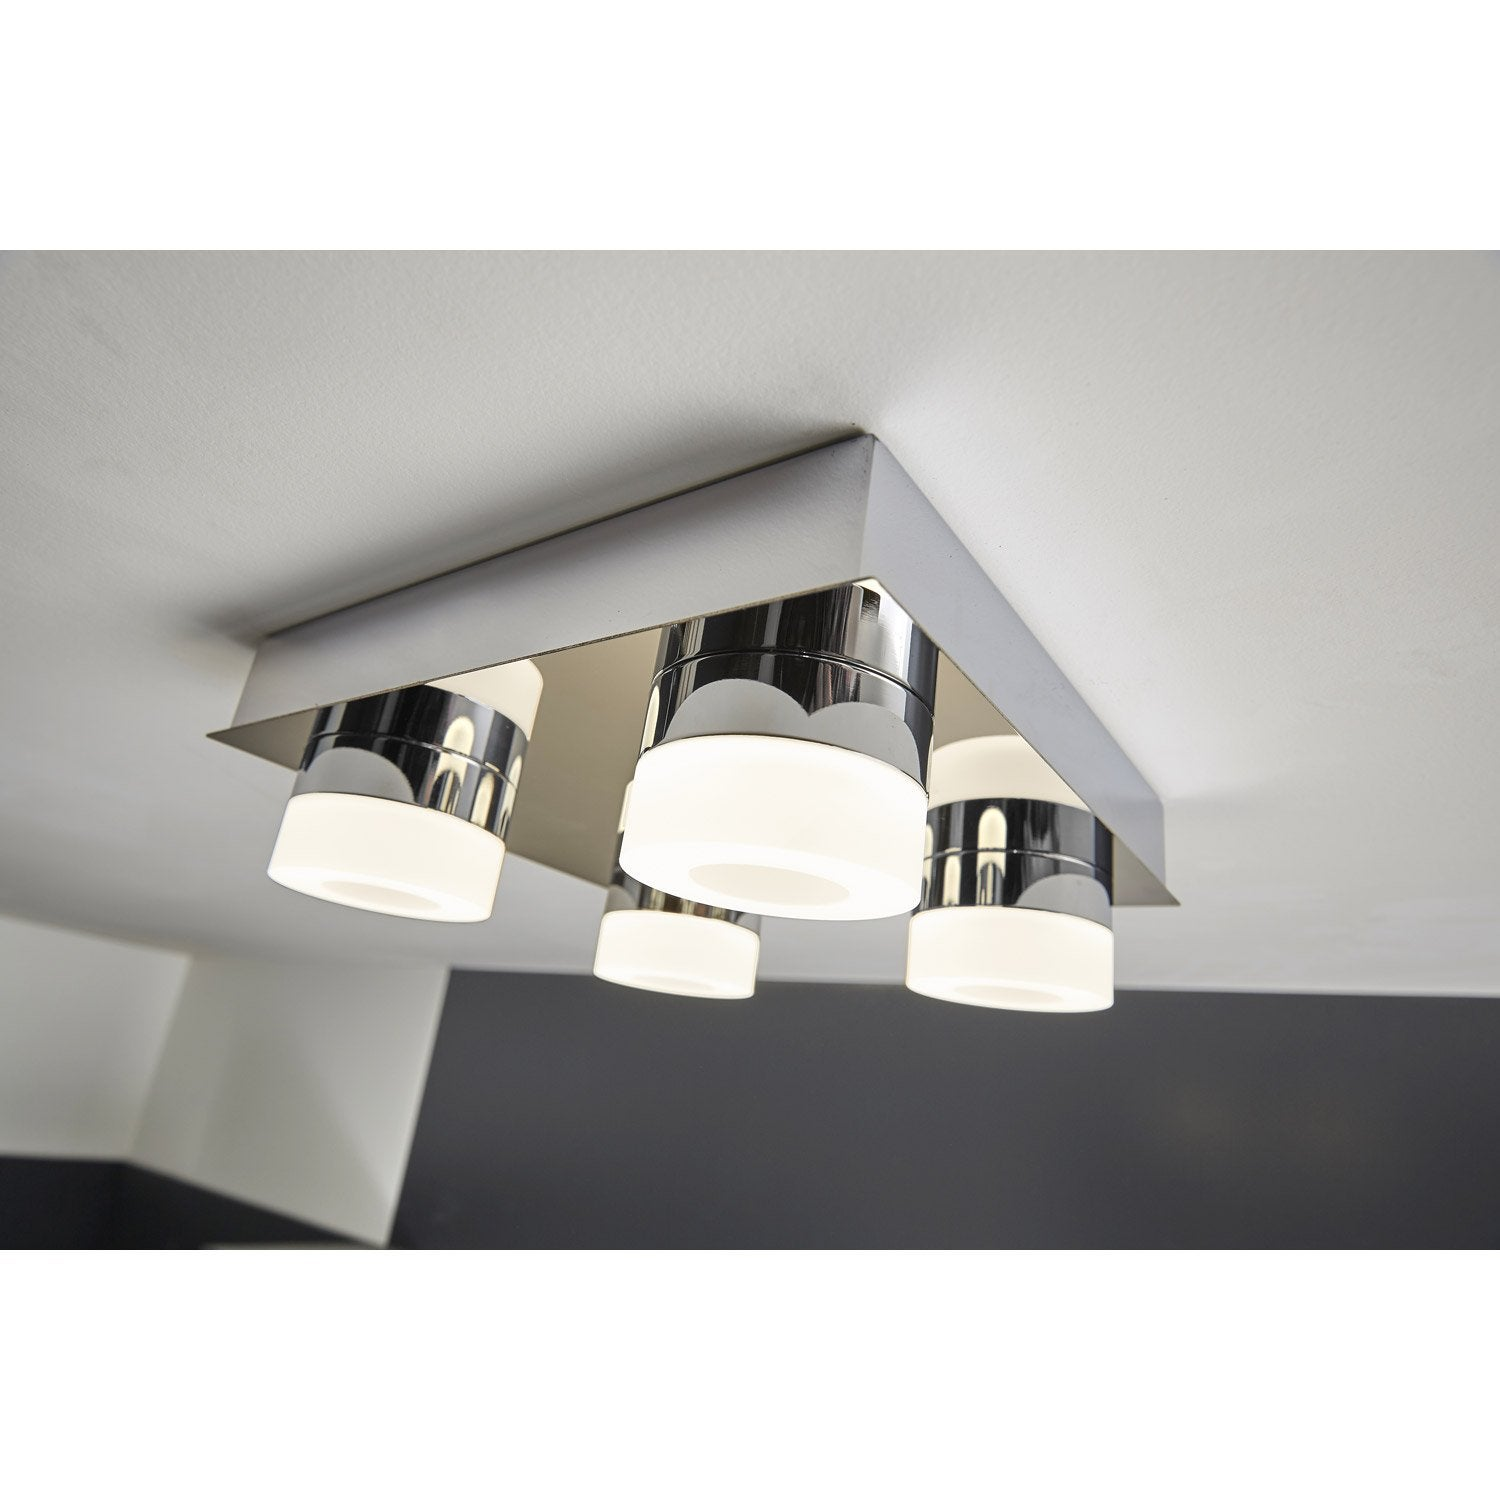 plafonnier icaria led 4 x 3 5 w led int gr e blanc froid leroy merlin. Black Bedroom Furniture Sets. Home Design Ideas